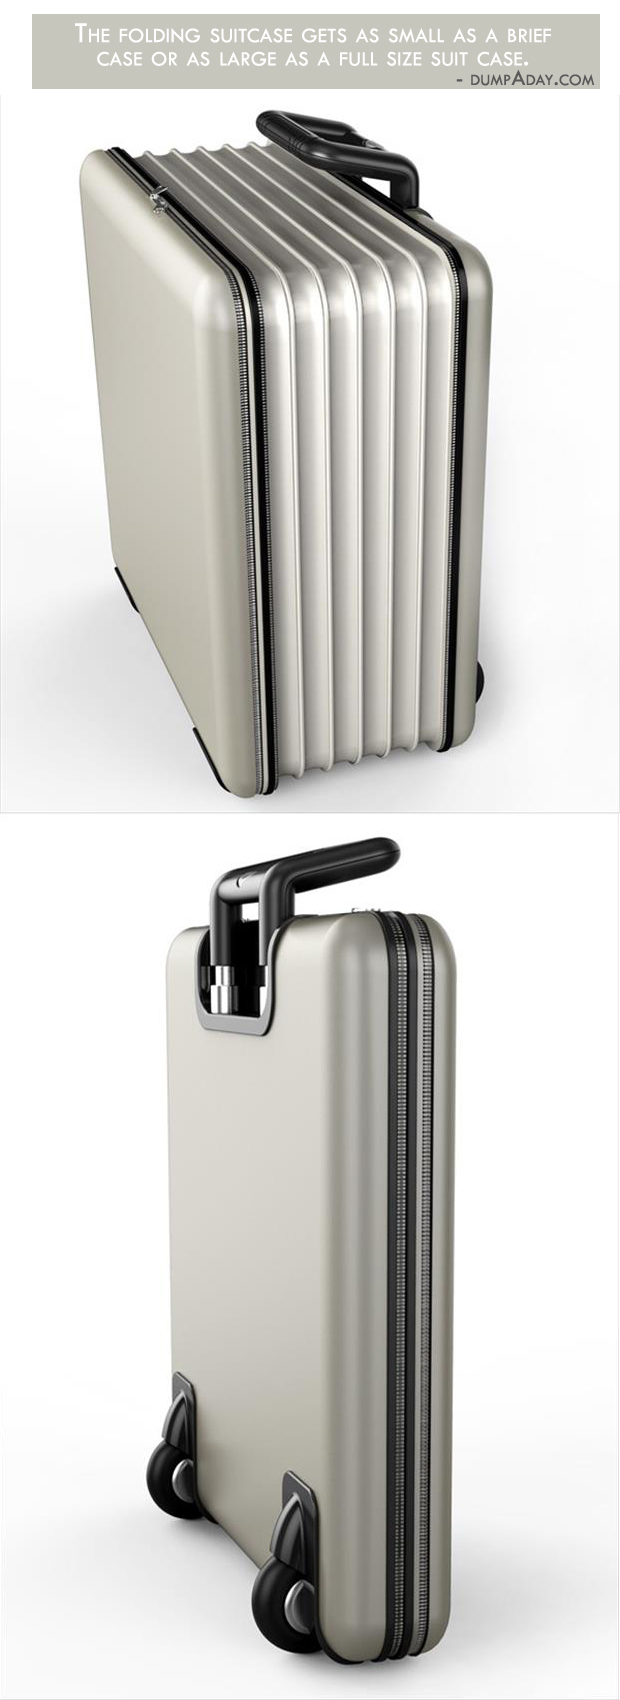 Borderline Genius Ideas- Folding Suitcase